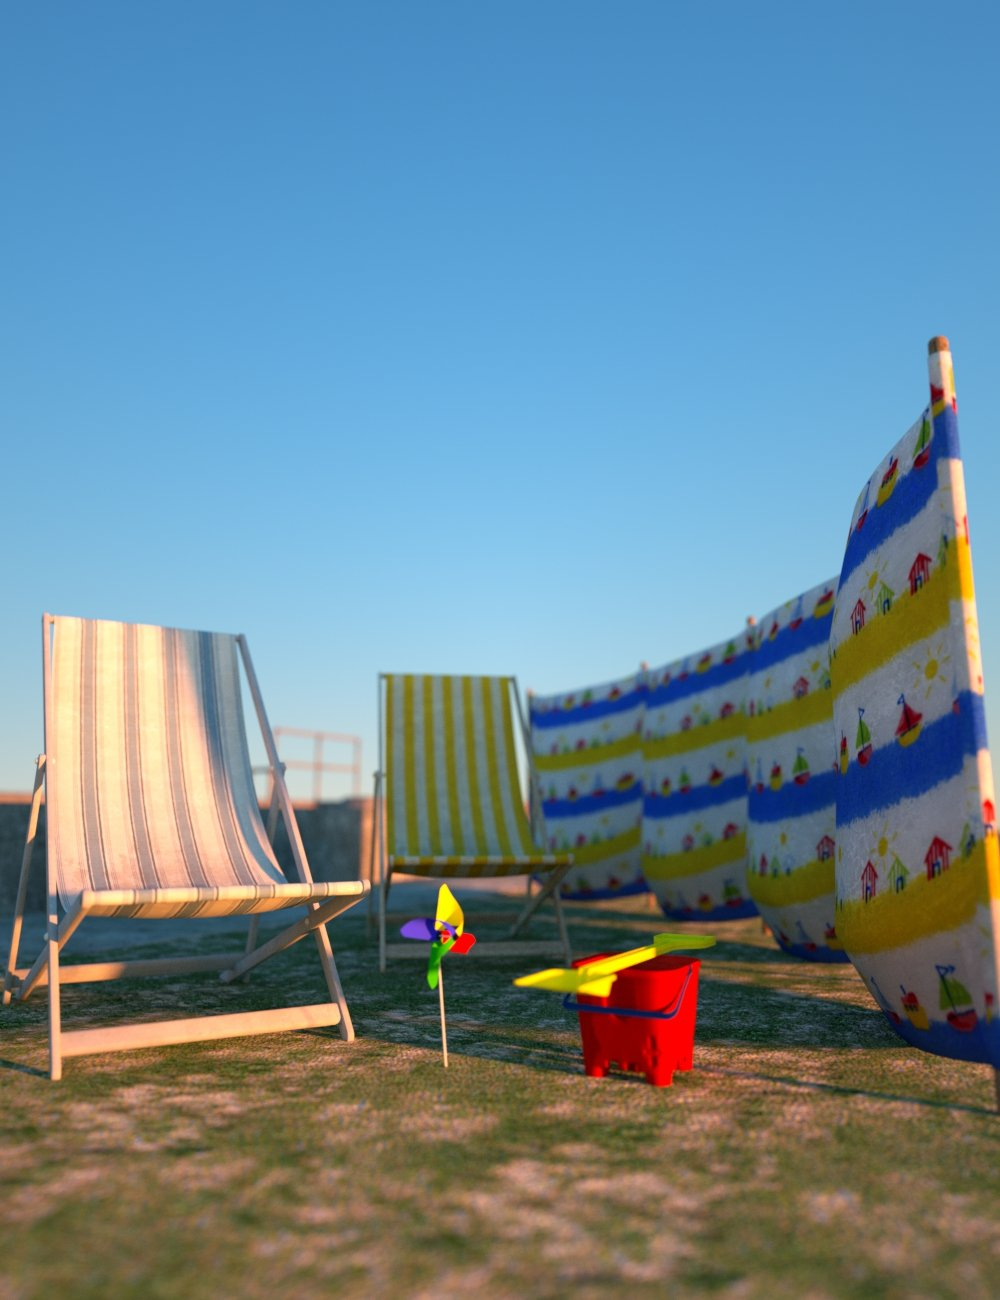 By the Seaside Promenade and Props by: David BrinnenForbiddenWhispers, 3D Models by Daz 3D